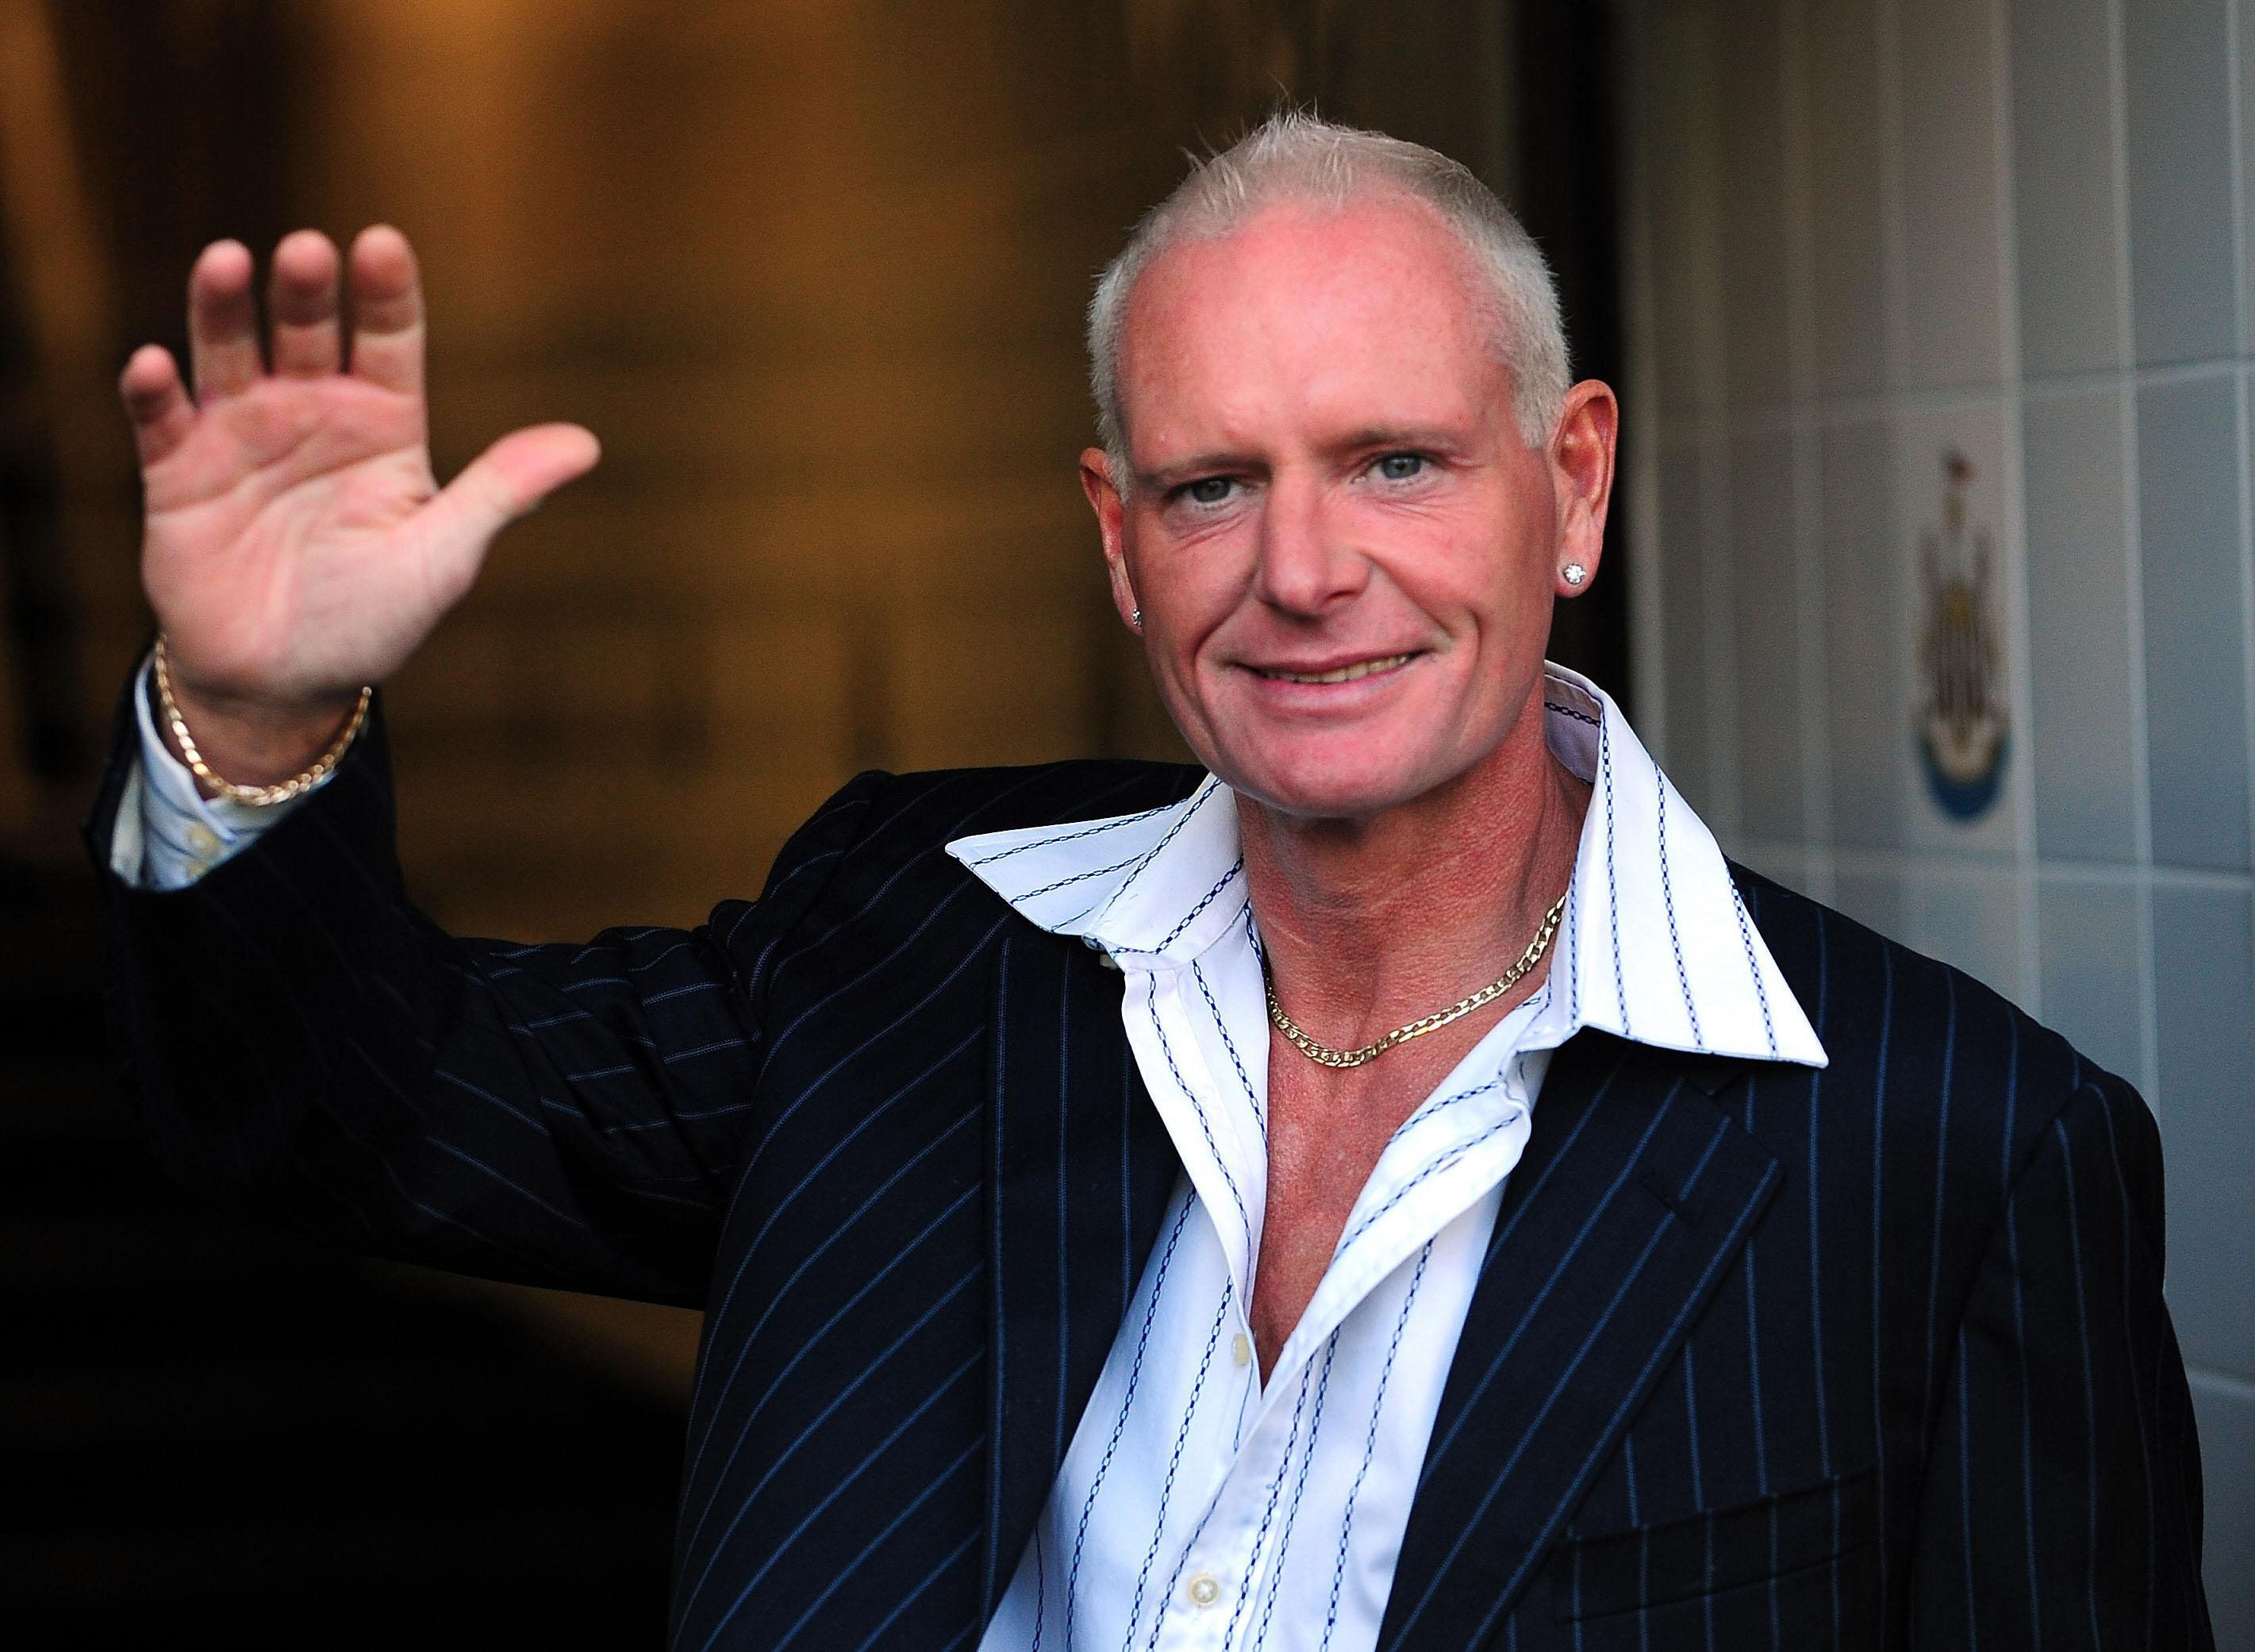 Gazza Hospitalised After Being 'Kicked Down Stairs Of London